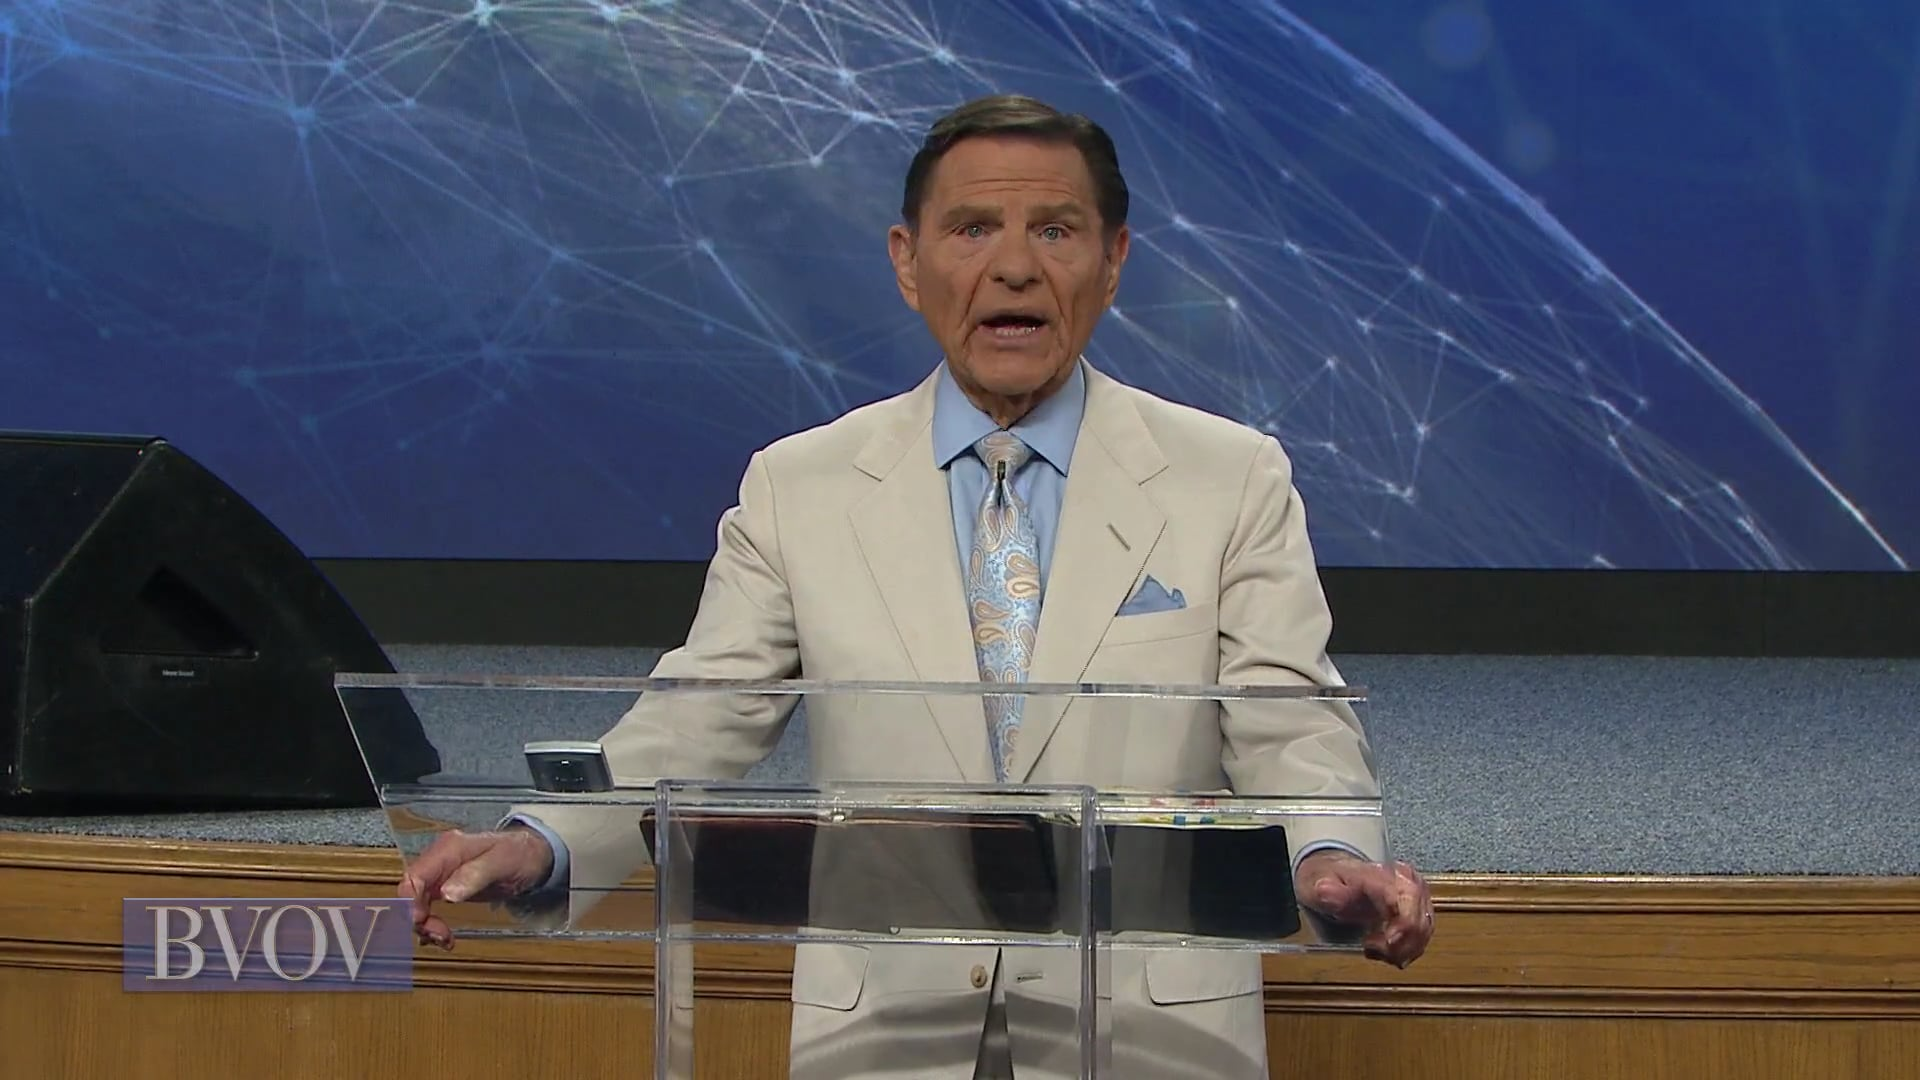 Watch Kenneth Copeland on Believer's Voice of Victory as he outlines four steps to activate powerful faith. Might you be missing one? It could be the difference between receiving everything you need and desire, and not receiving at all. Maximize your faith with these simple adjustments!